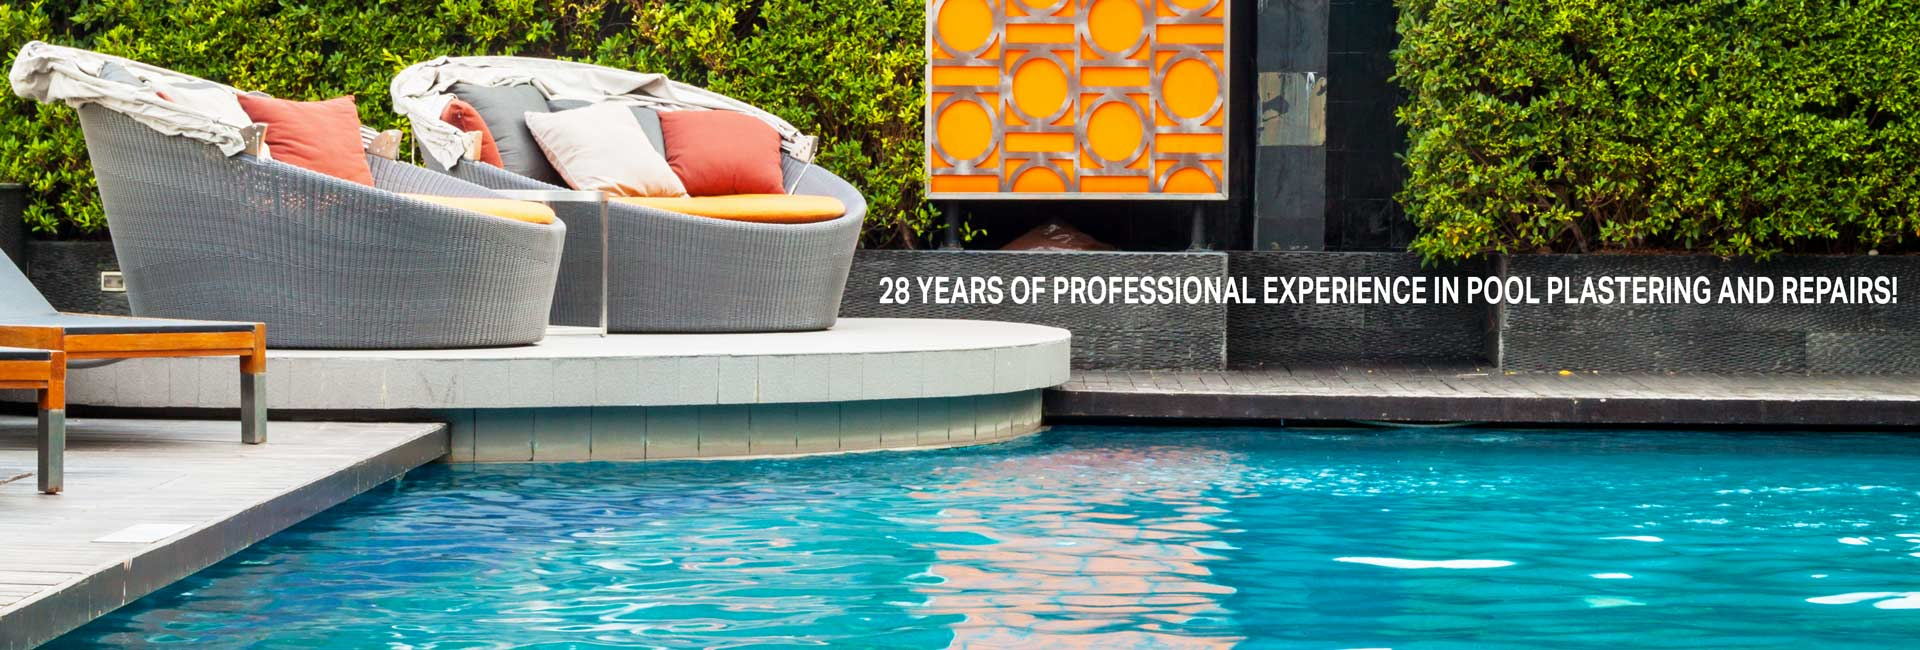 Pool Plaster Repair In Columbia Sc Pool Repair Company